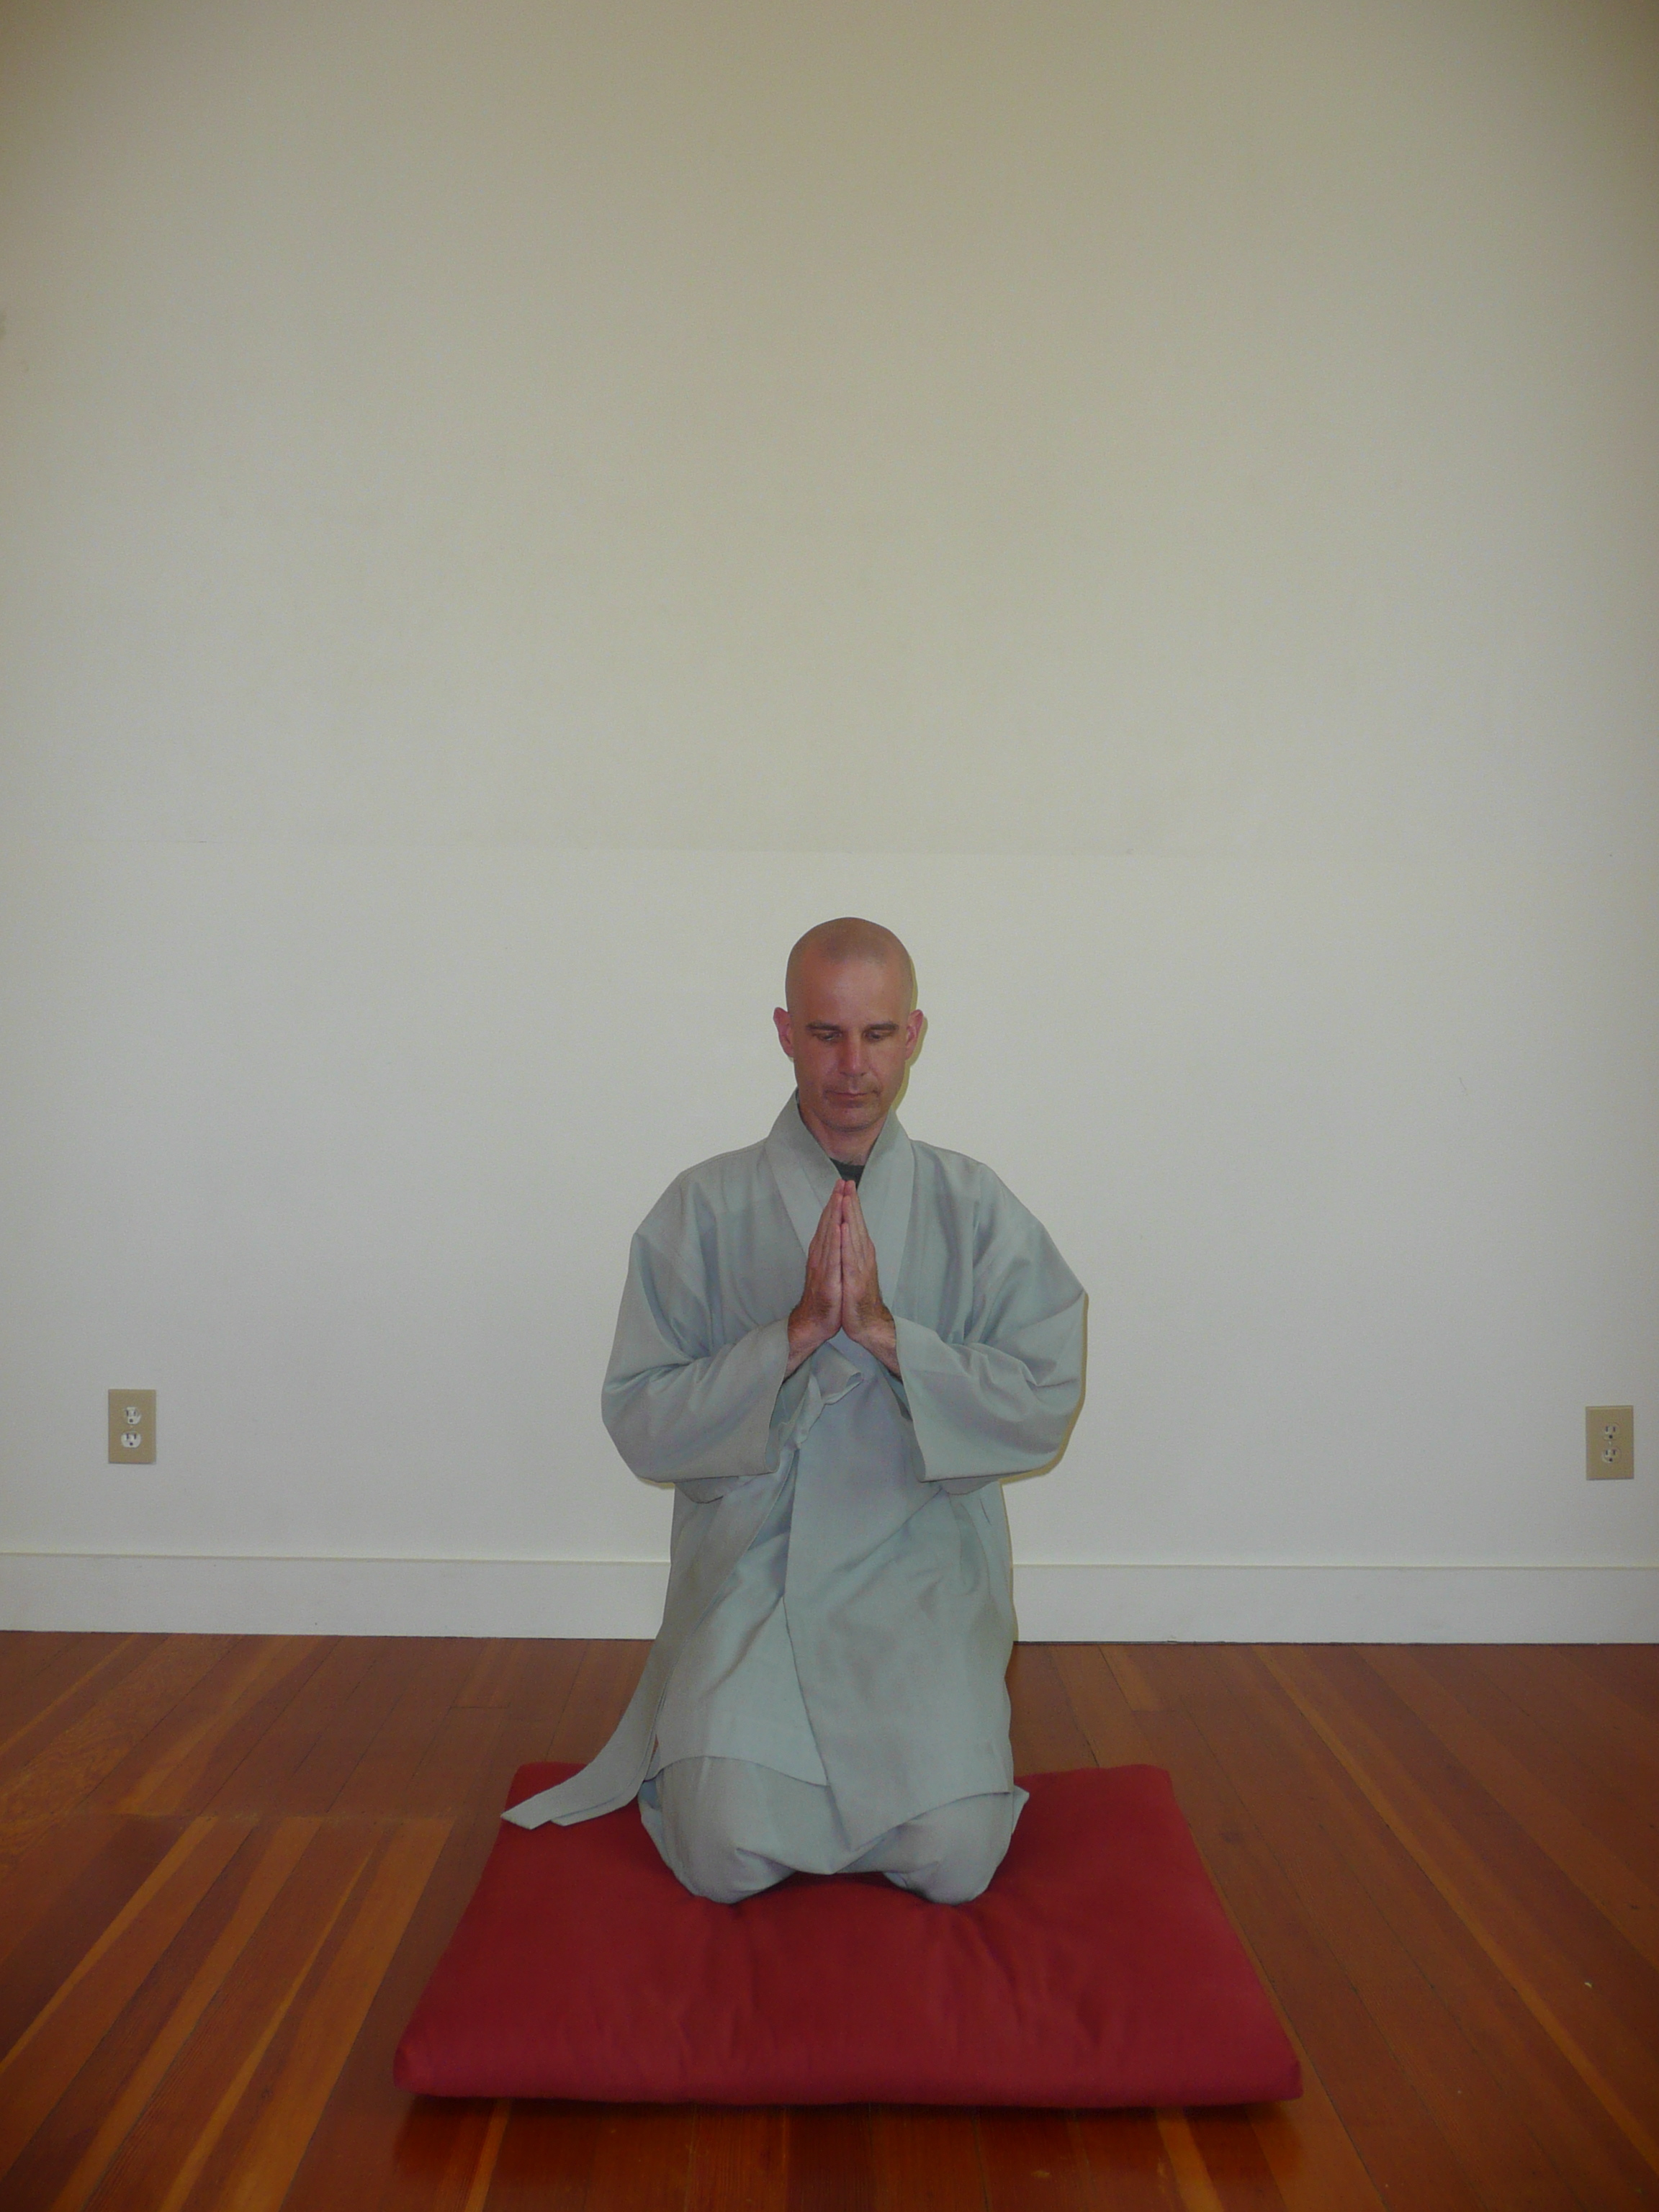 6. Sit back on your heels and come to a vertical position with your hands in hapchang, resting on the balls of your feet again. -